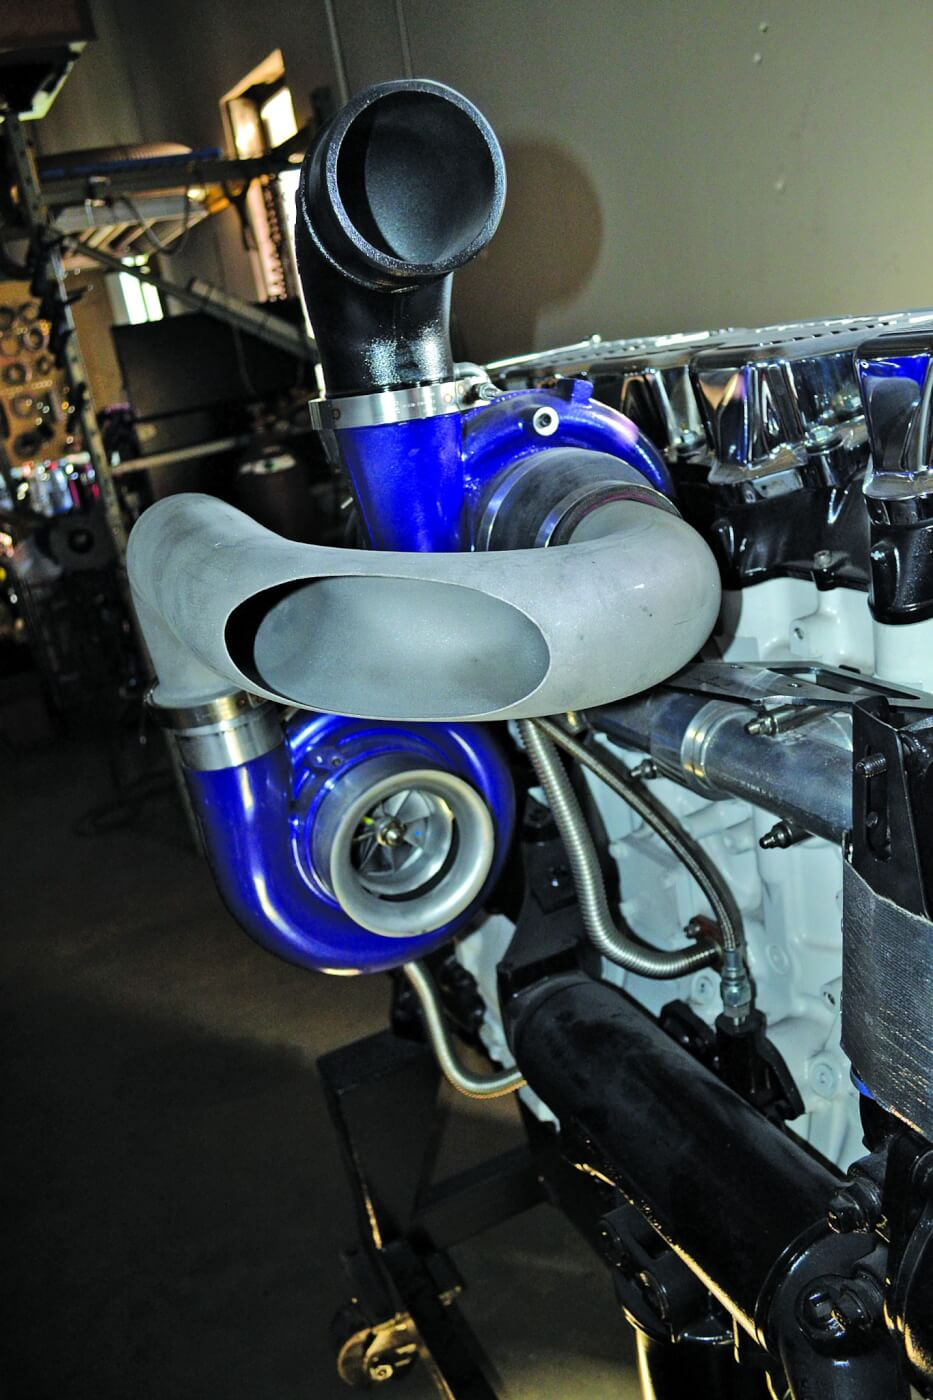 Check out this cool compound turbo setup that's being developed for a large CAT engine.